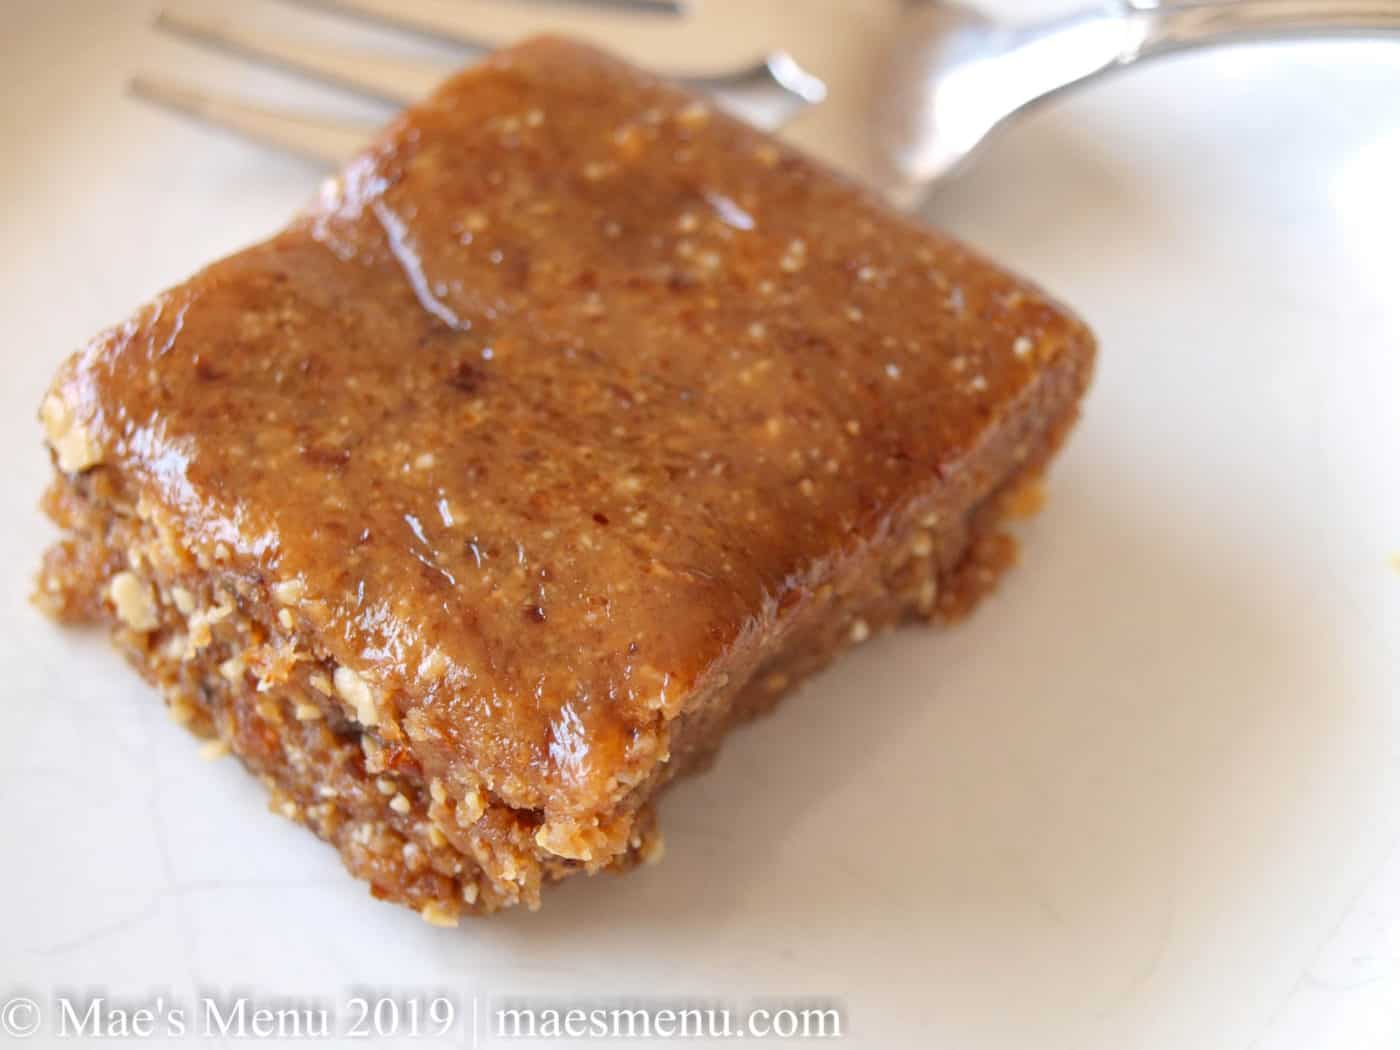 Upclose picture of Peanut Butter & Jelly Larabar recipe.